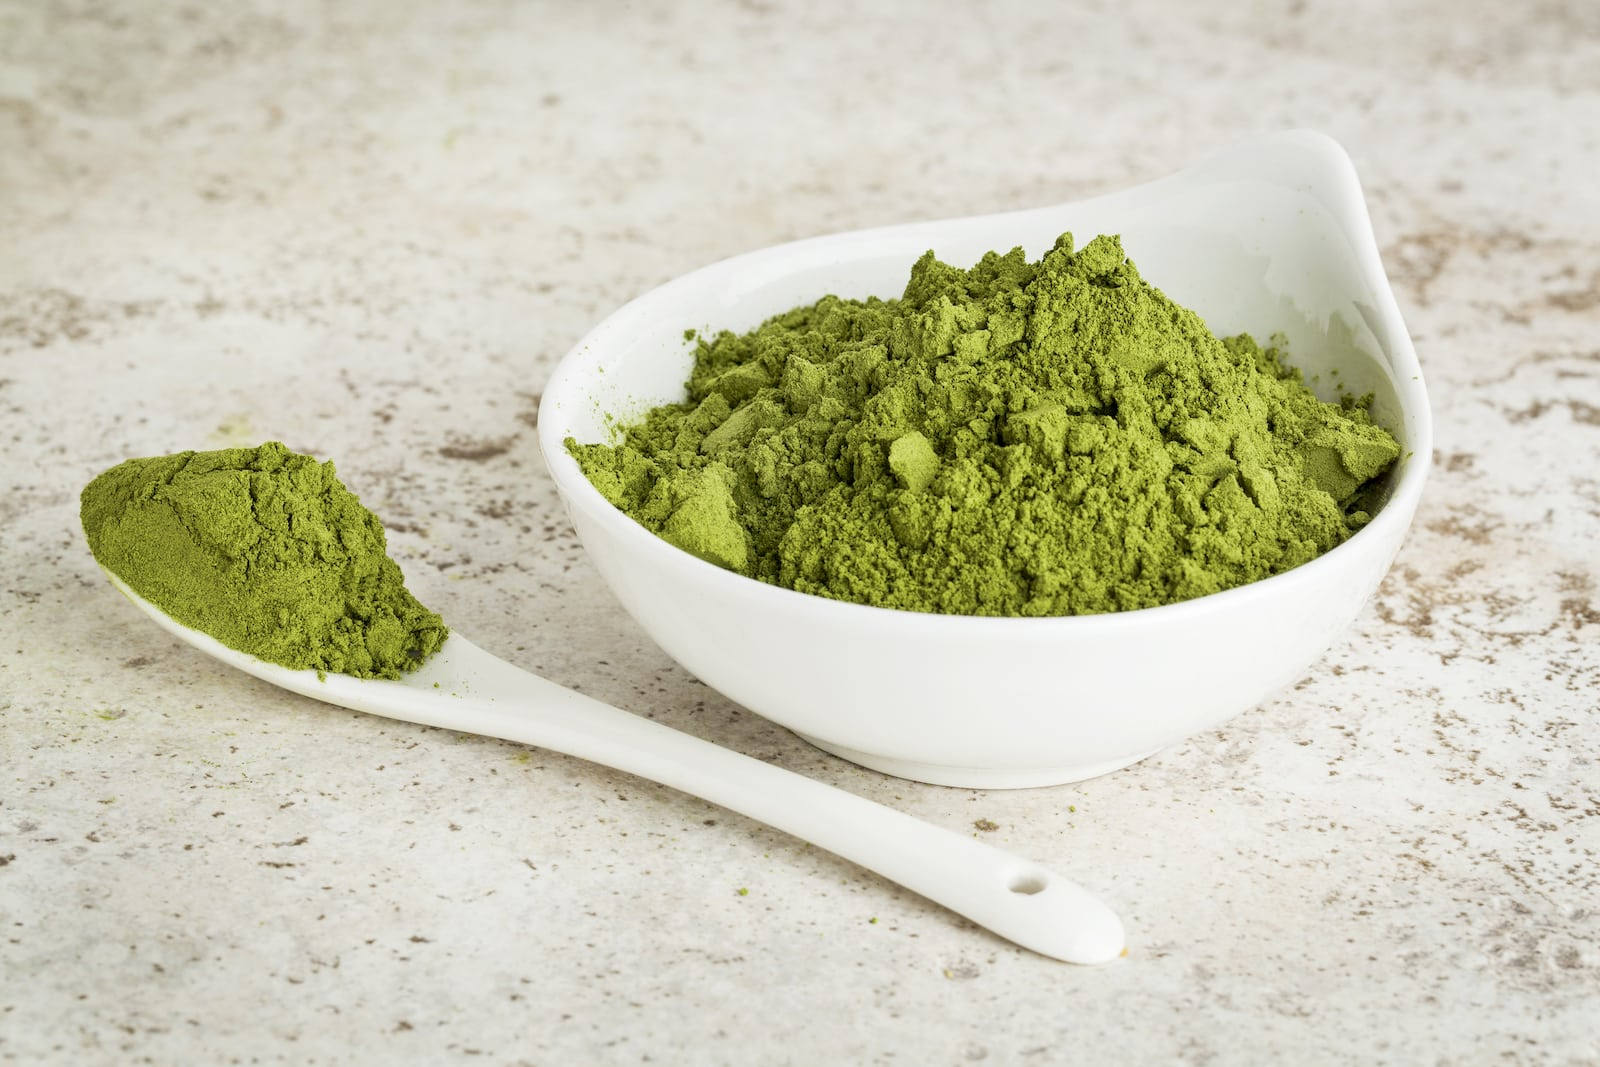 Moringa: An Indian Panacea